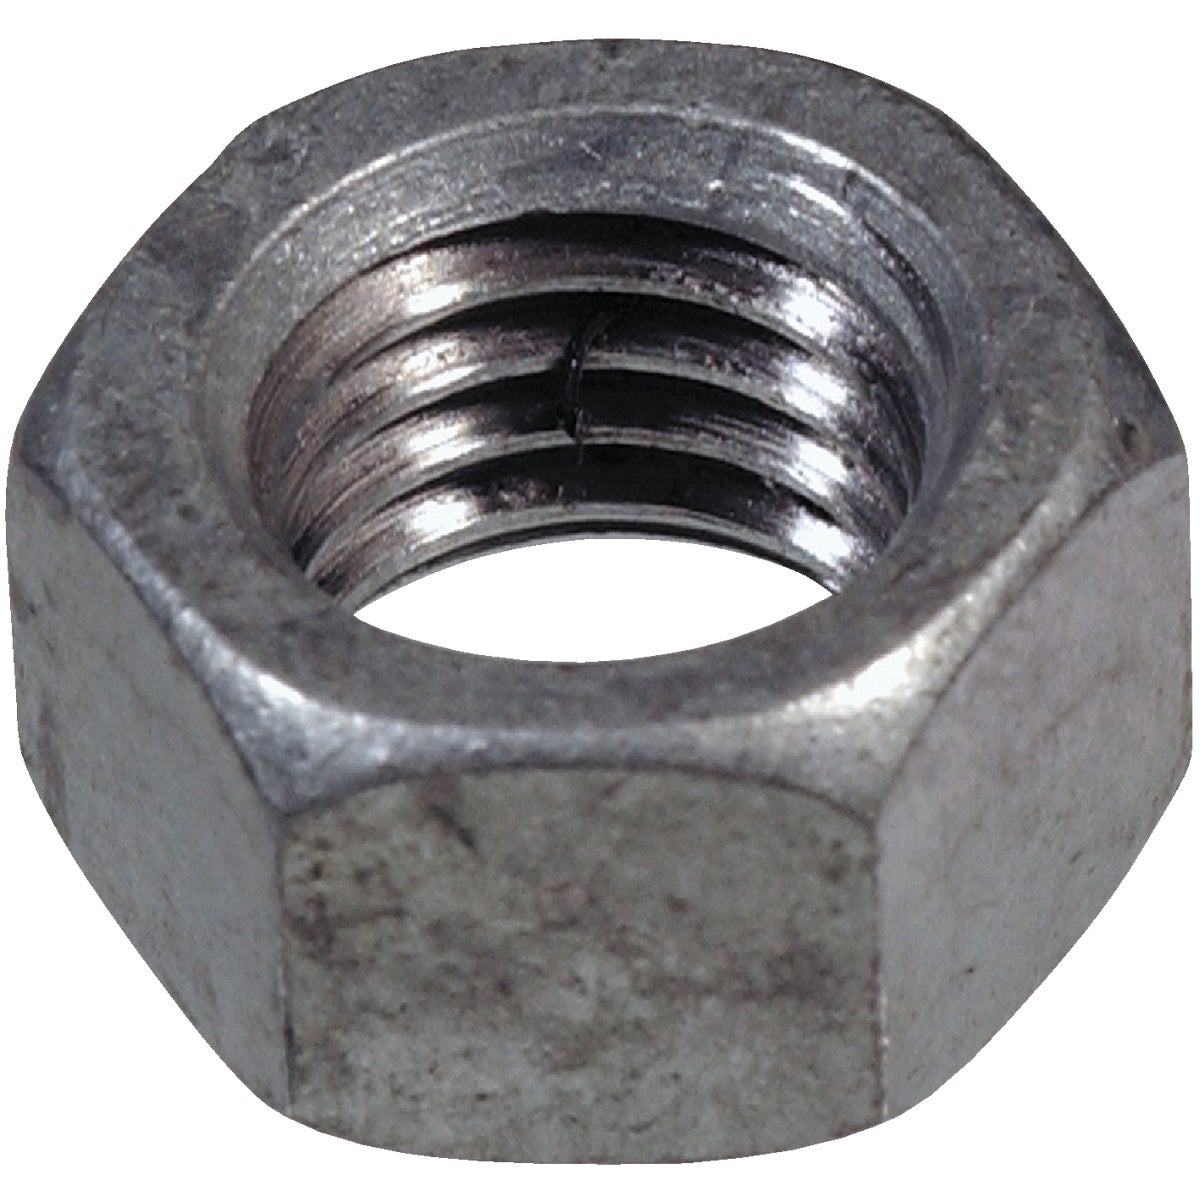 1/2-13 SS HEX NUT